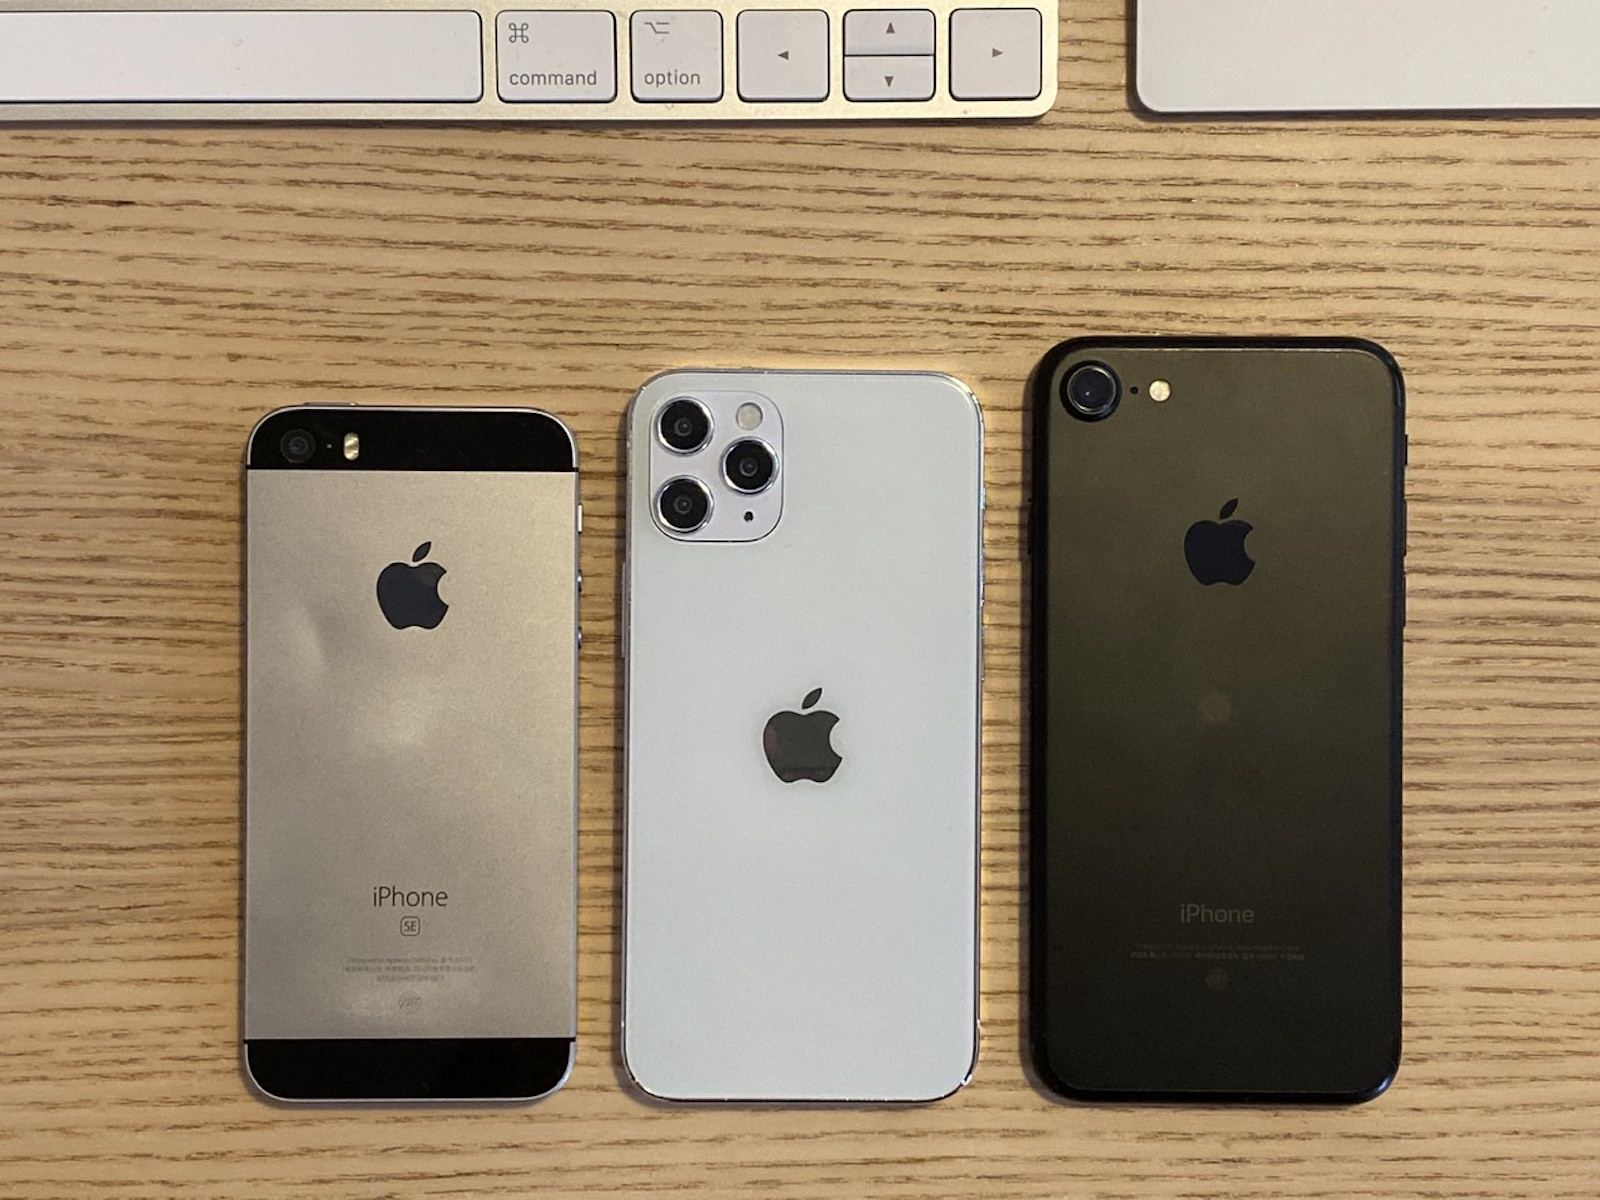 Iphonese 4inch comparing to iphone12mini